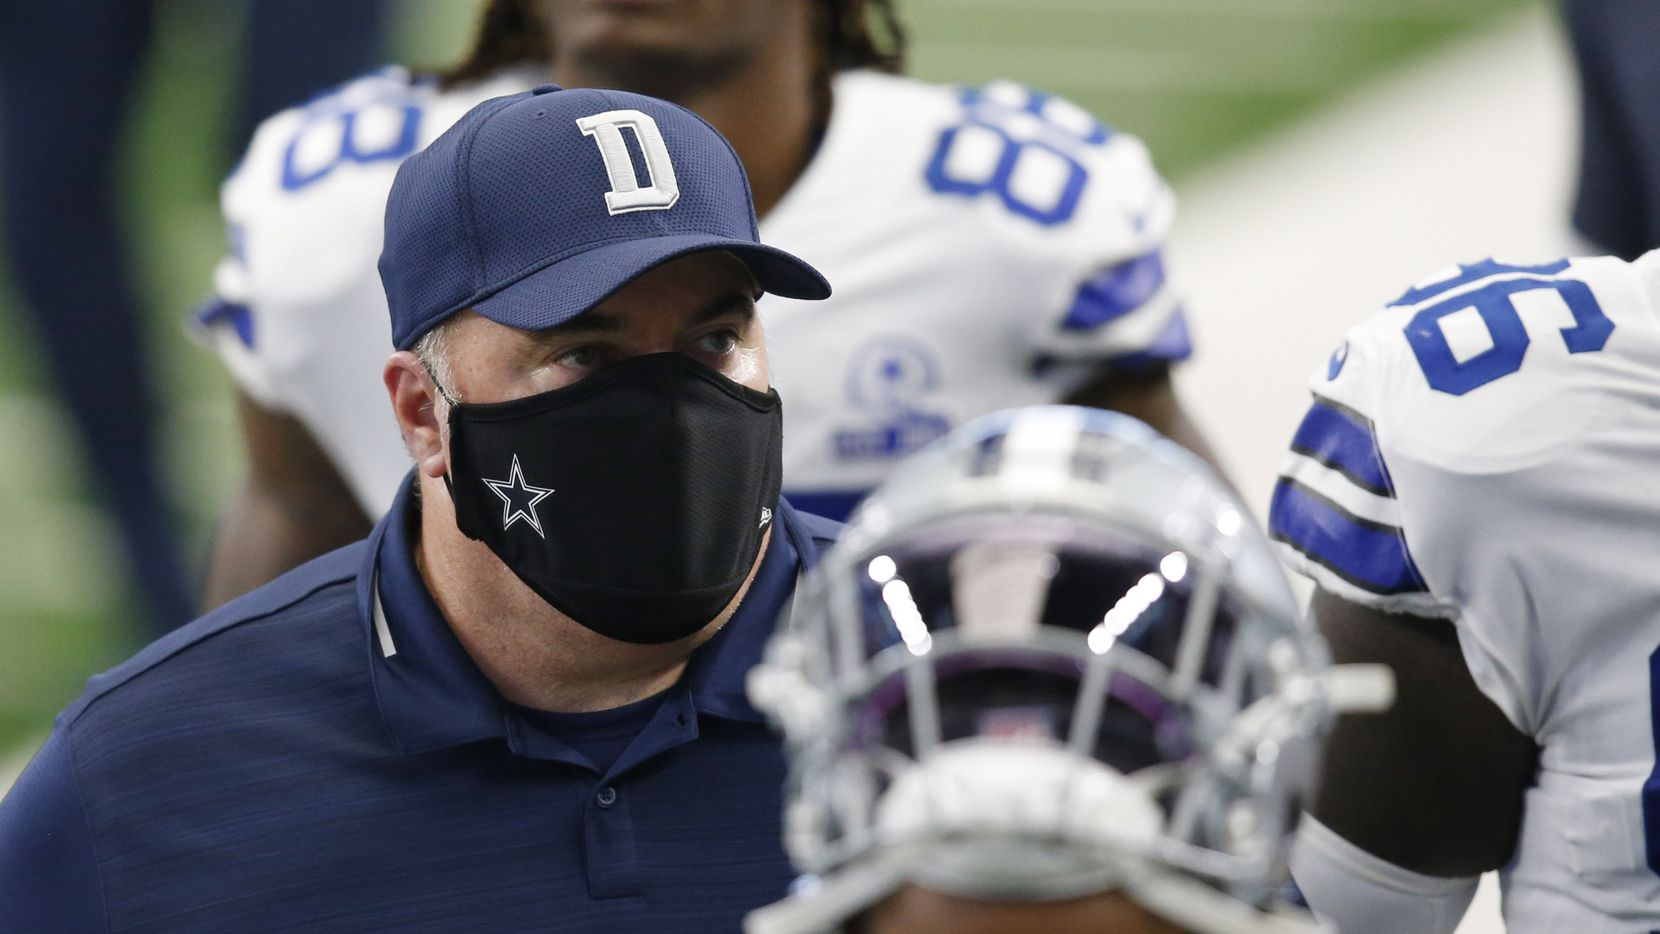 Dallas Cowboys head coach Mike McCarthy exits the field with the team at halftime in a game against the Atlanta Falcons at AT&T Stadium in Arlington, Texas on Sunday, September 20, 2020.